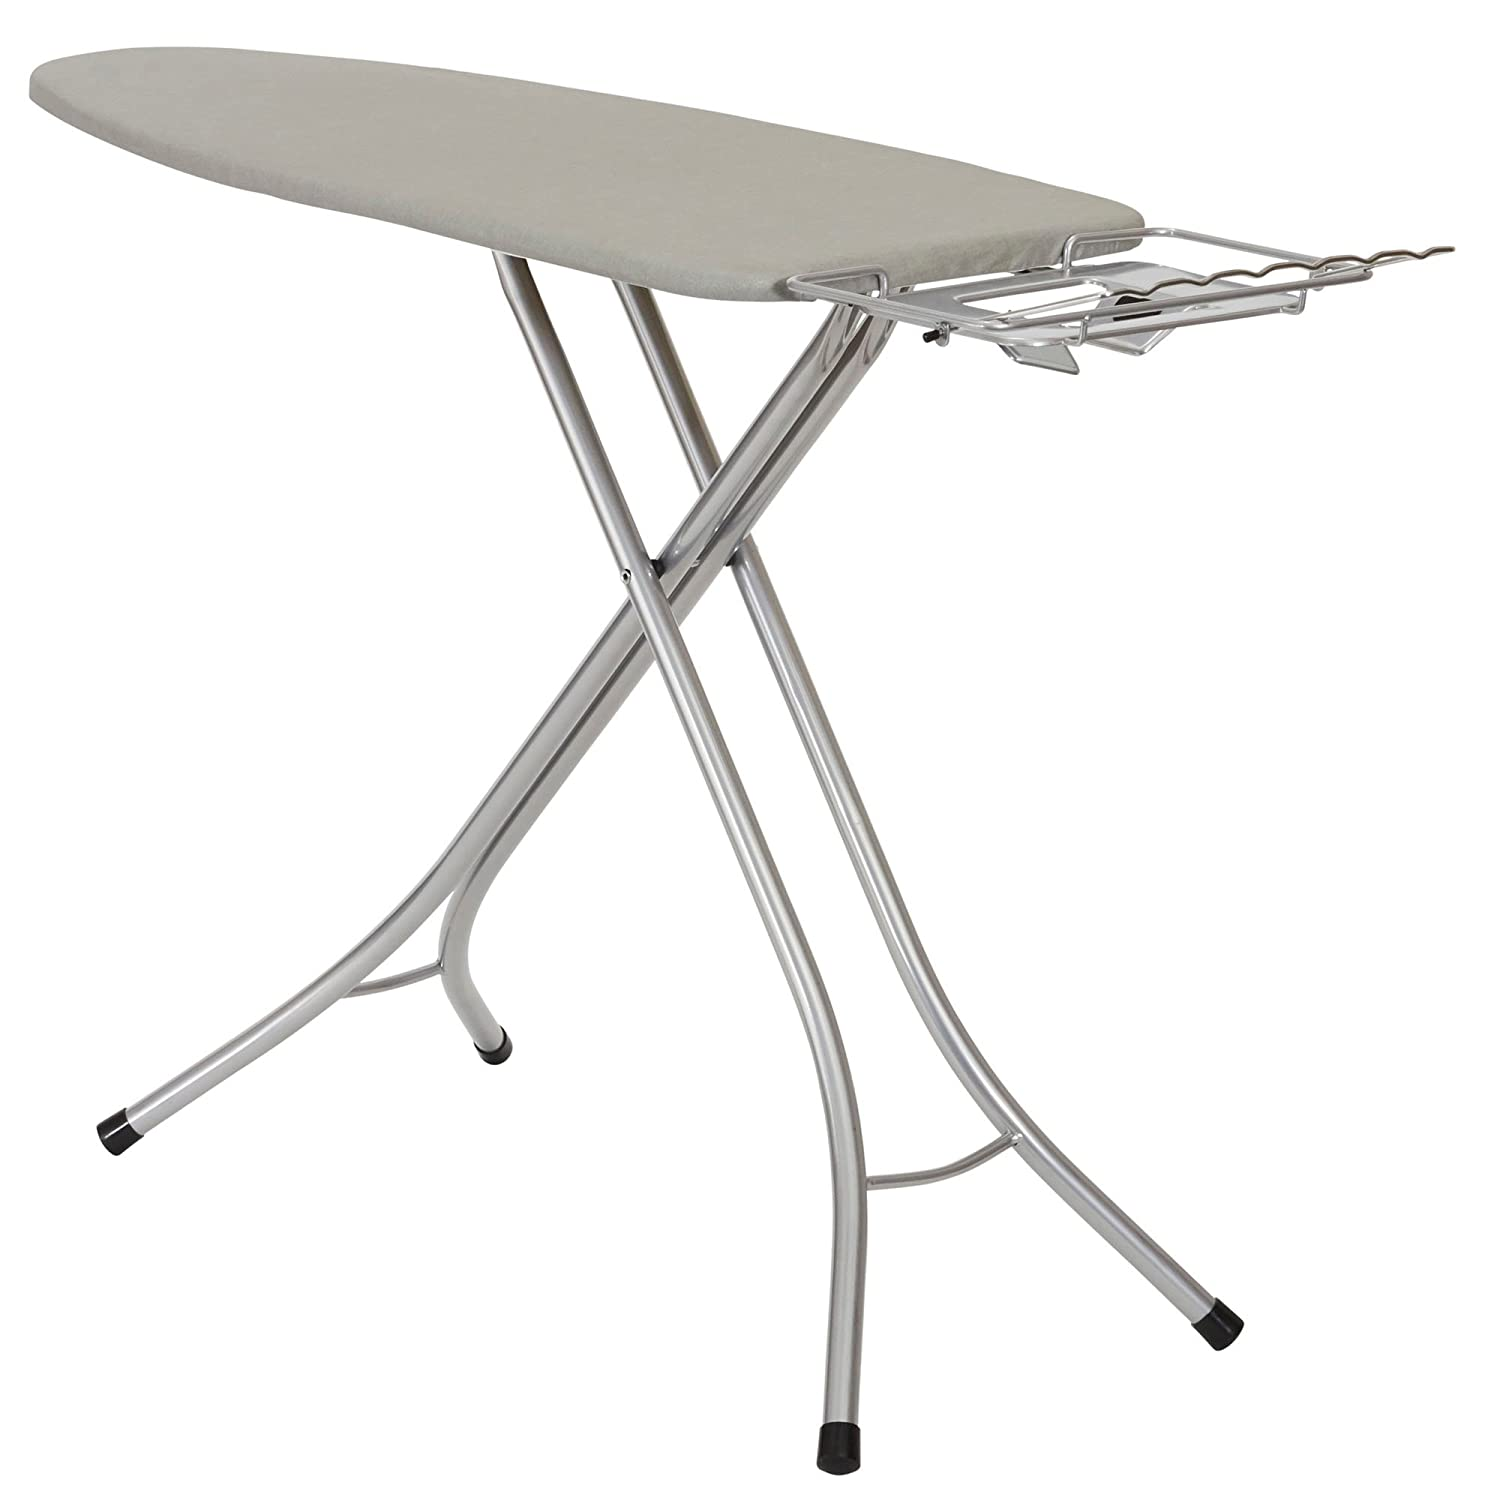 MattsGlobal Mega Wide Top 4-Leg Ironing Board Quickly And Easily With Leg Locks Cotton Plastic Material Convenient Iron Rest (並行輸入) 141[並行輸入] B07F2W655J